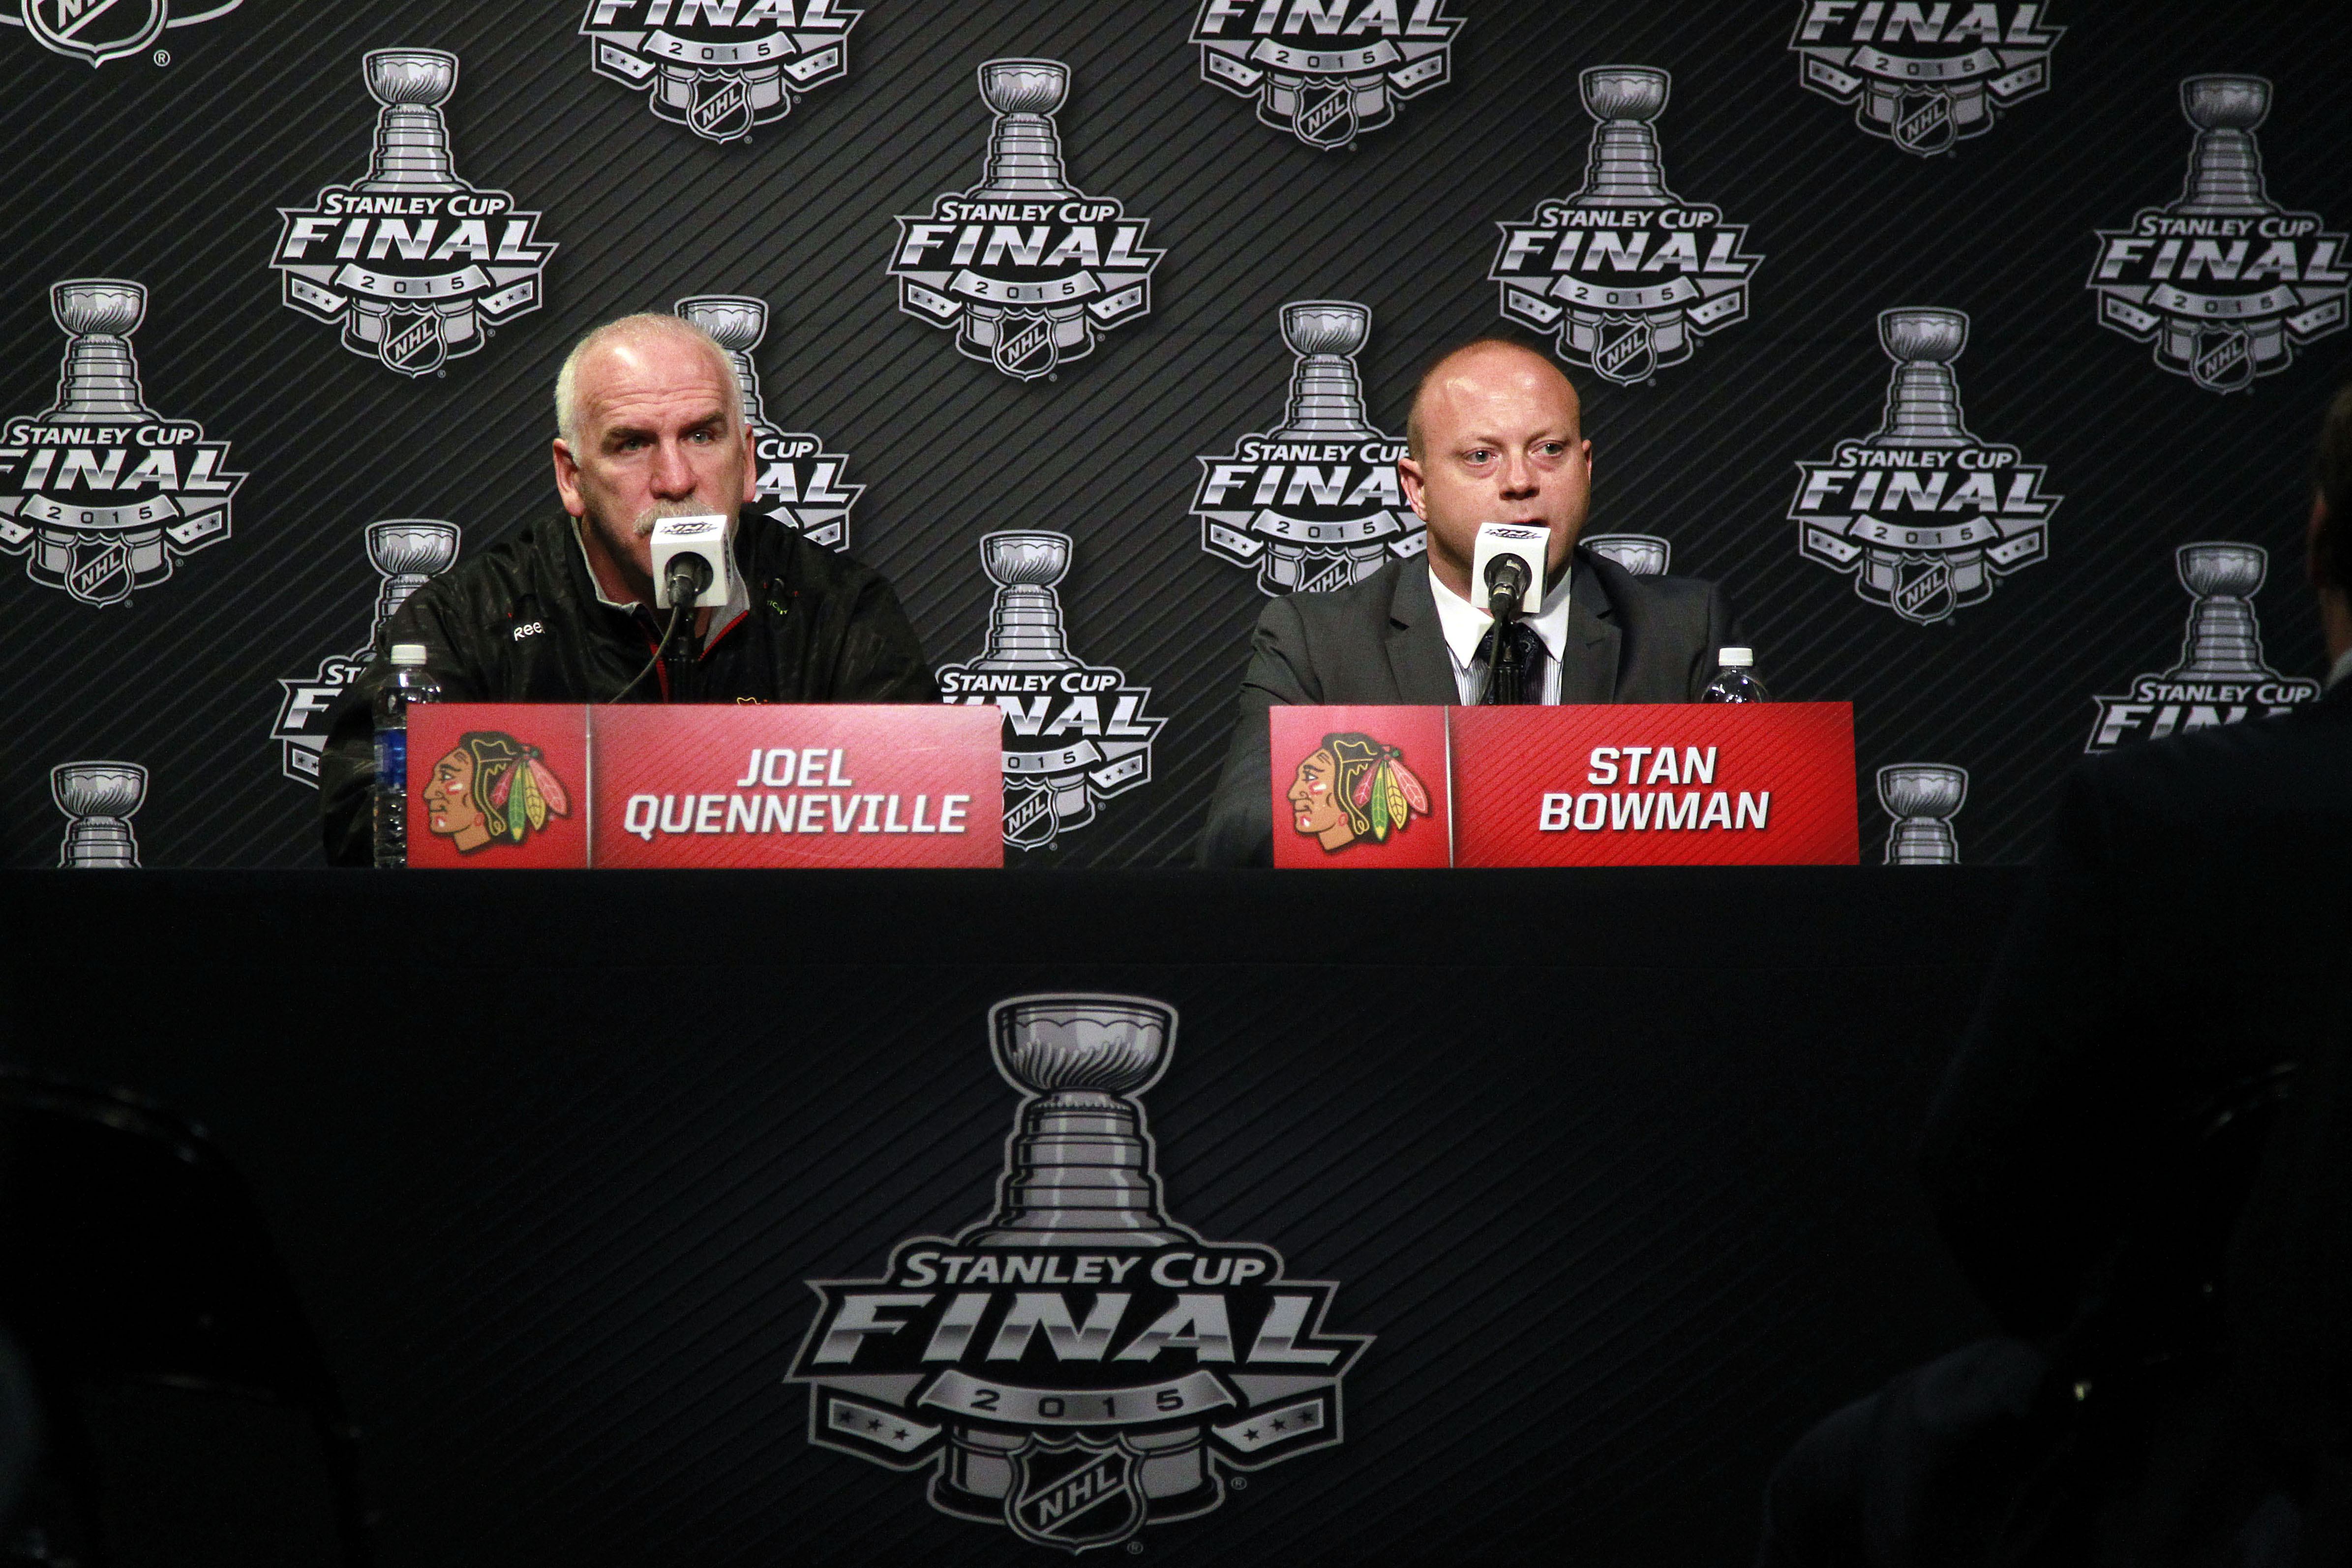 8592249-nhl-stanley-cup-final-media-day